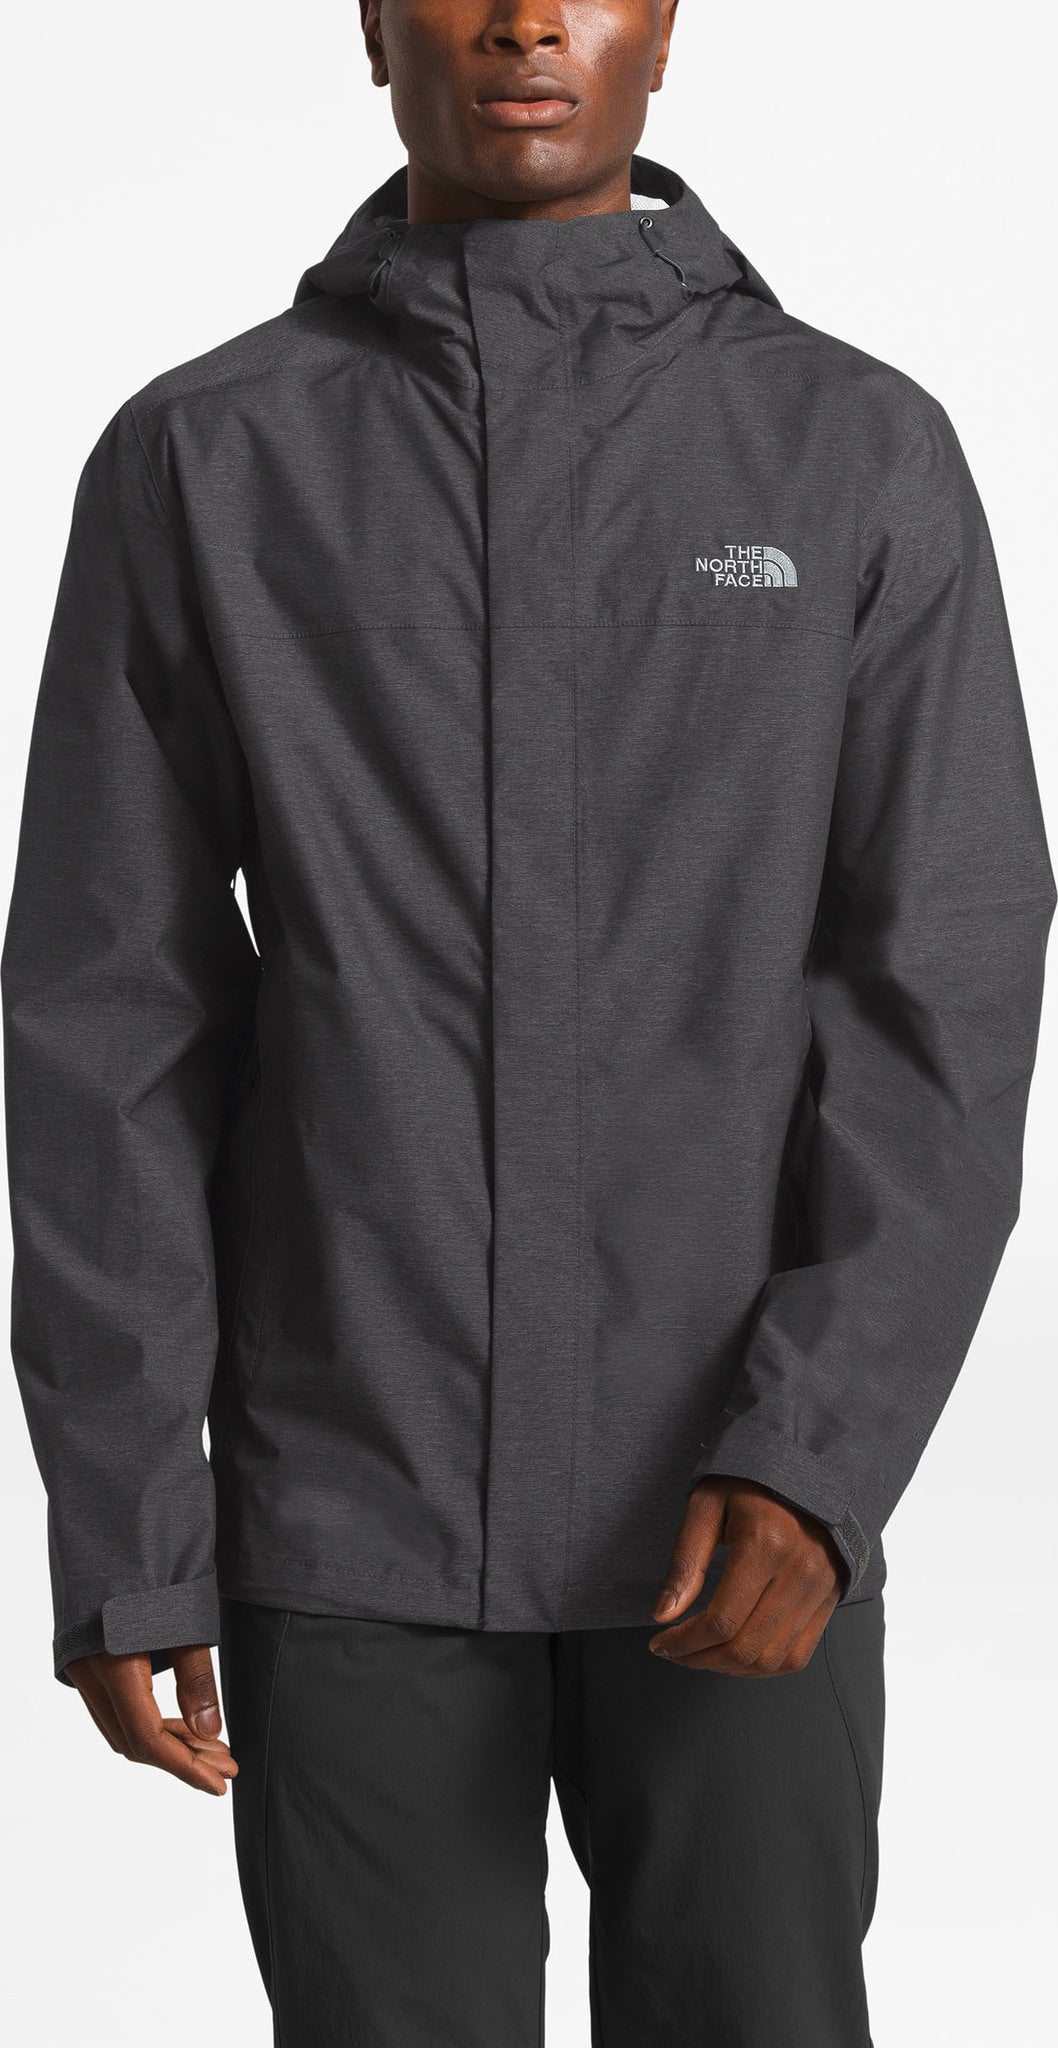 ffc6565b3 The North Face Venture 2 Jacket Tall - Men's